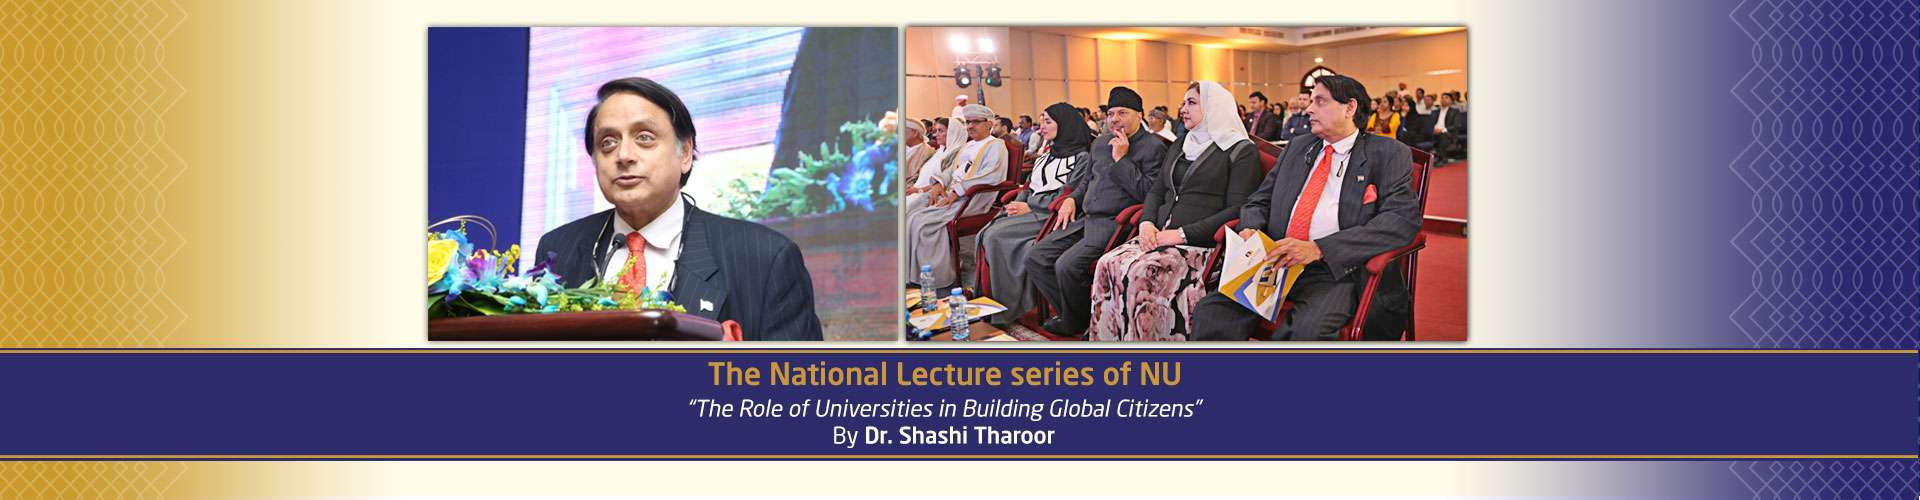 The National Lecture series